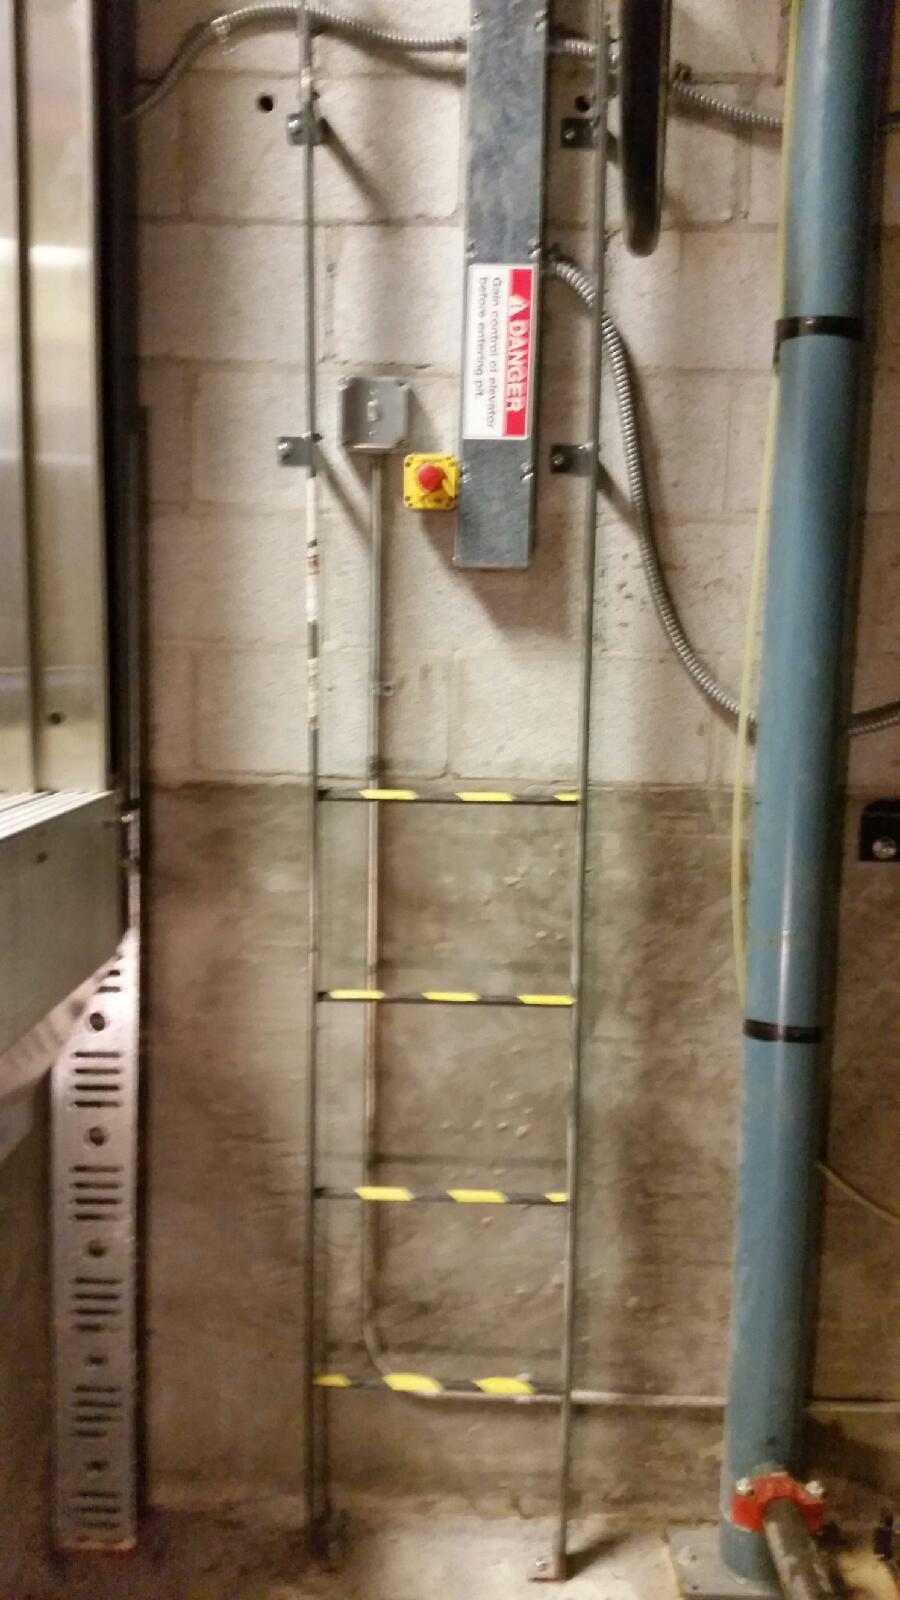 Lowest Floor Elevation Inspection : Chicago elevator maintenance colley